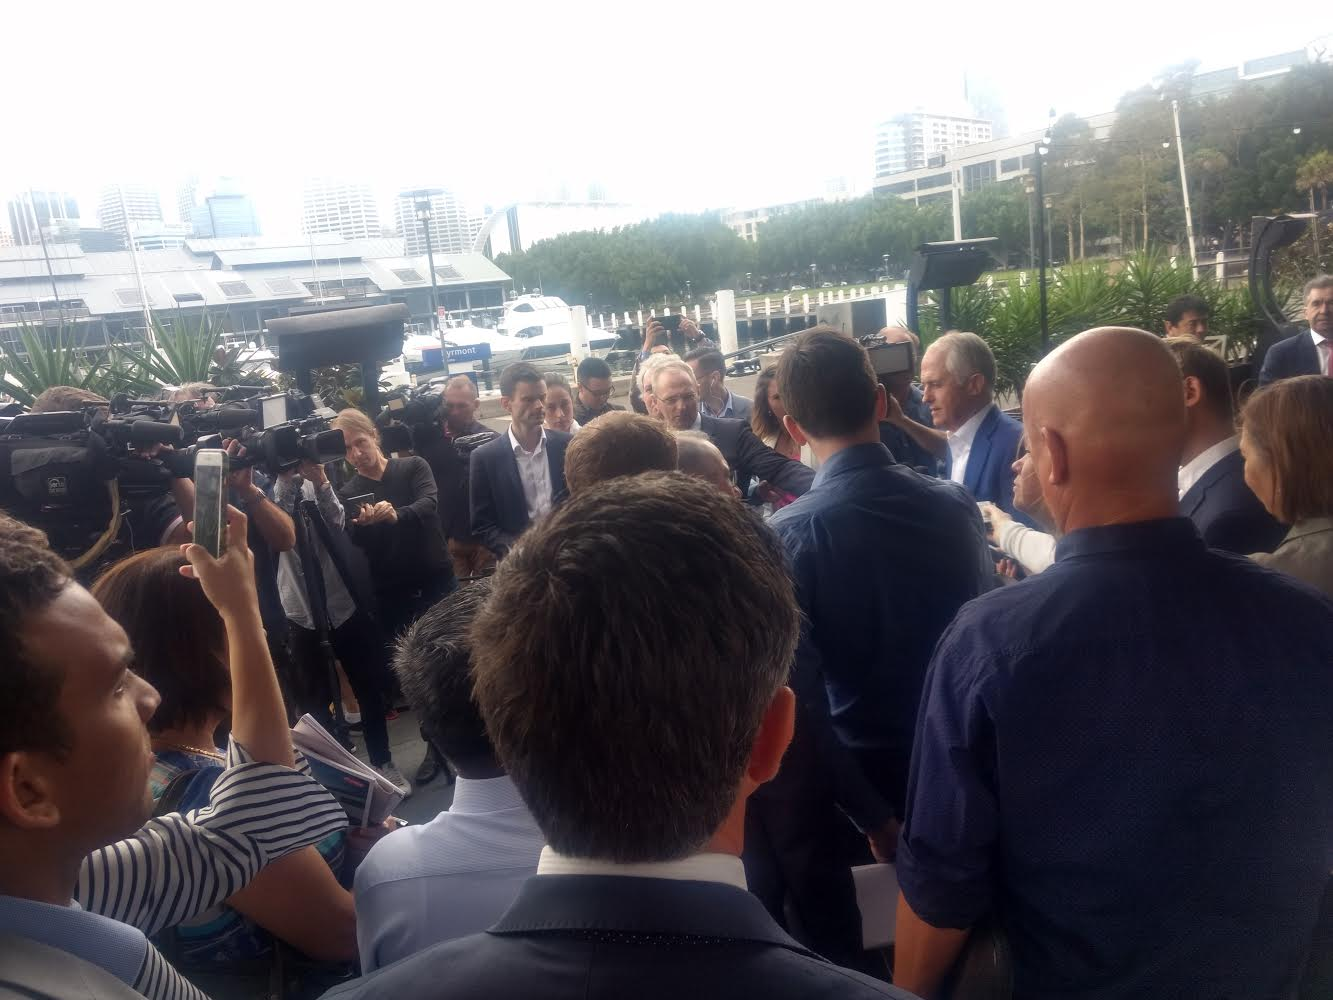 Malcolm Turnbull was popular inside and outside the Summit!